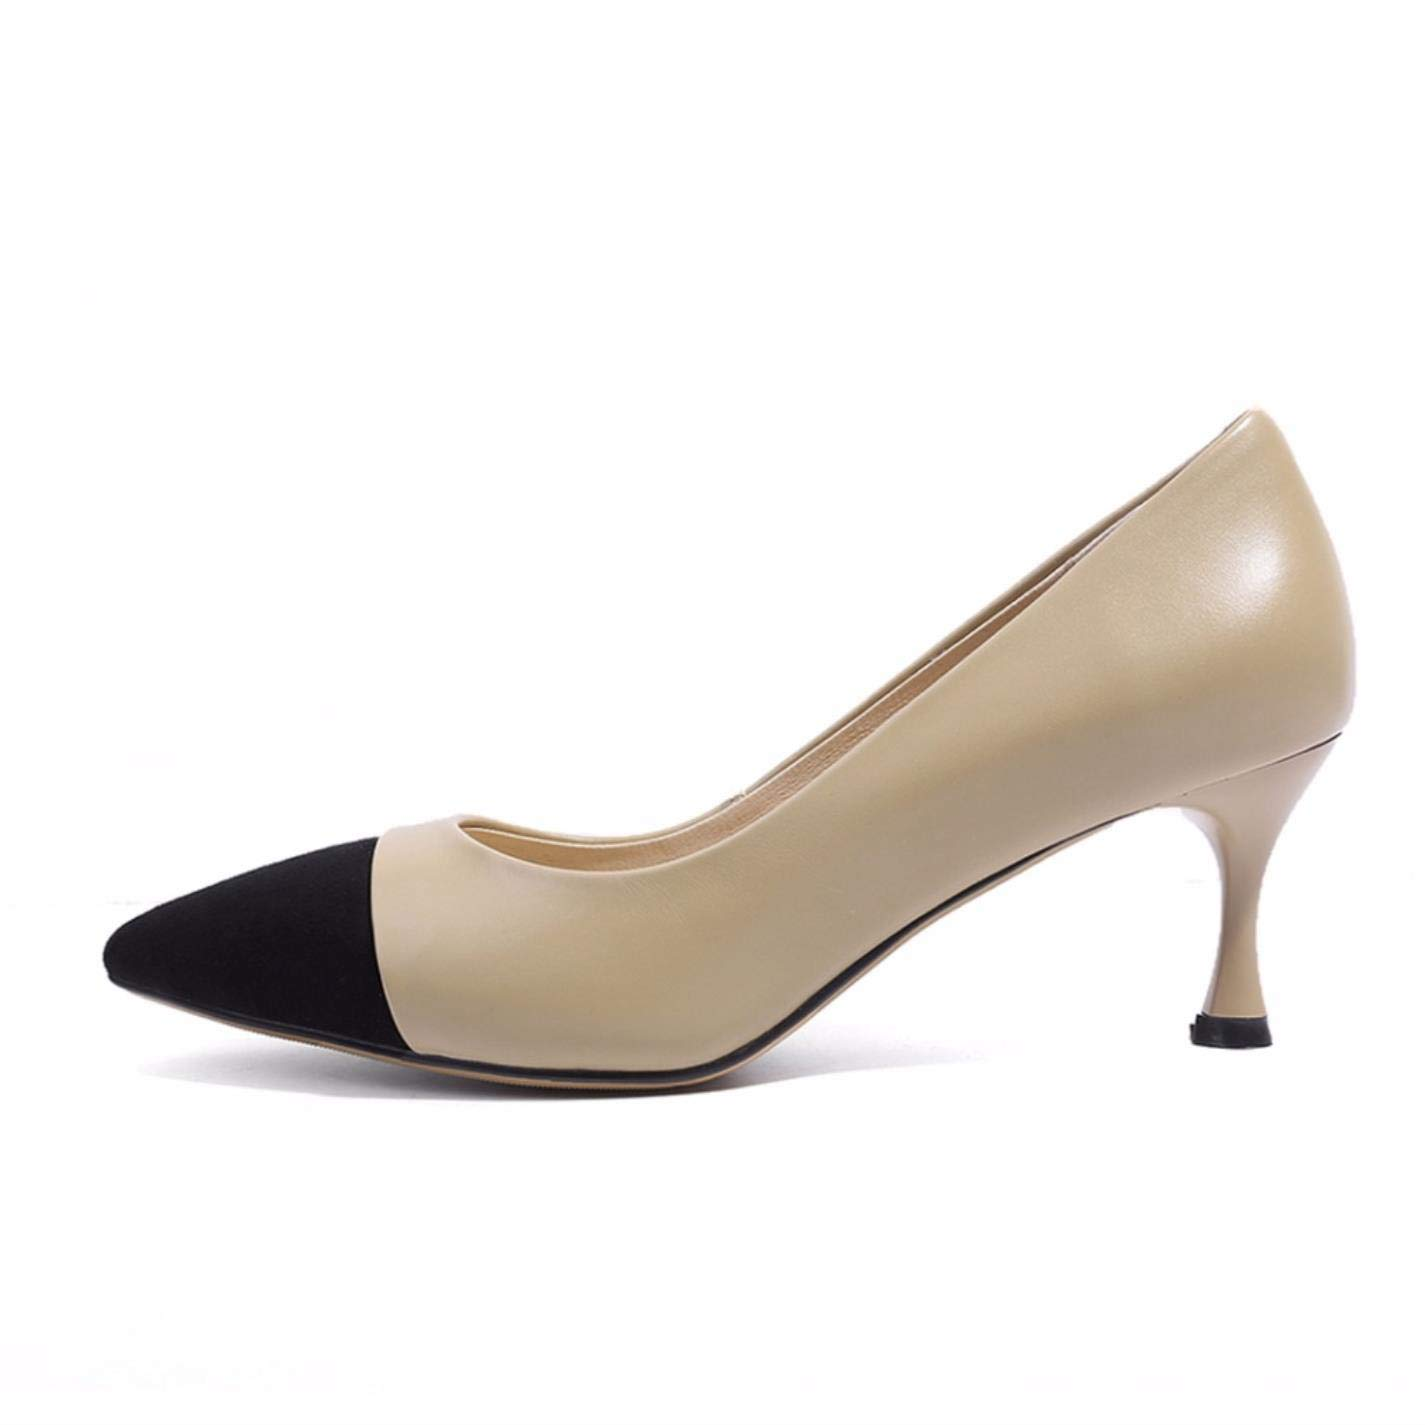 Office Shoes For Woman 6cm Pointed Toe Slip On Shoes Pumps